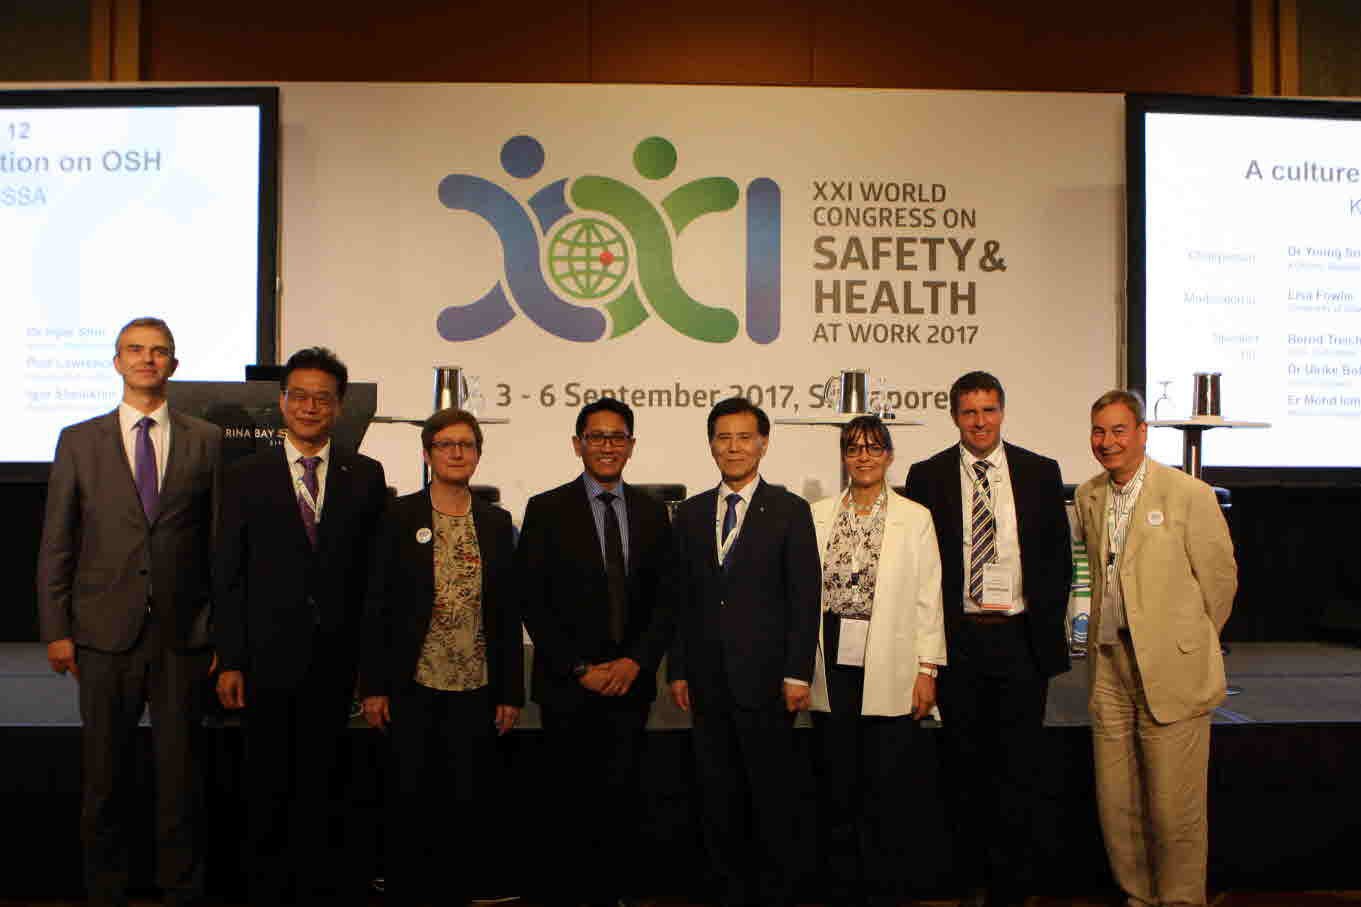 XXI World Congress on Safety and Health